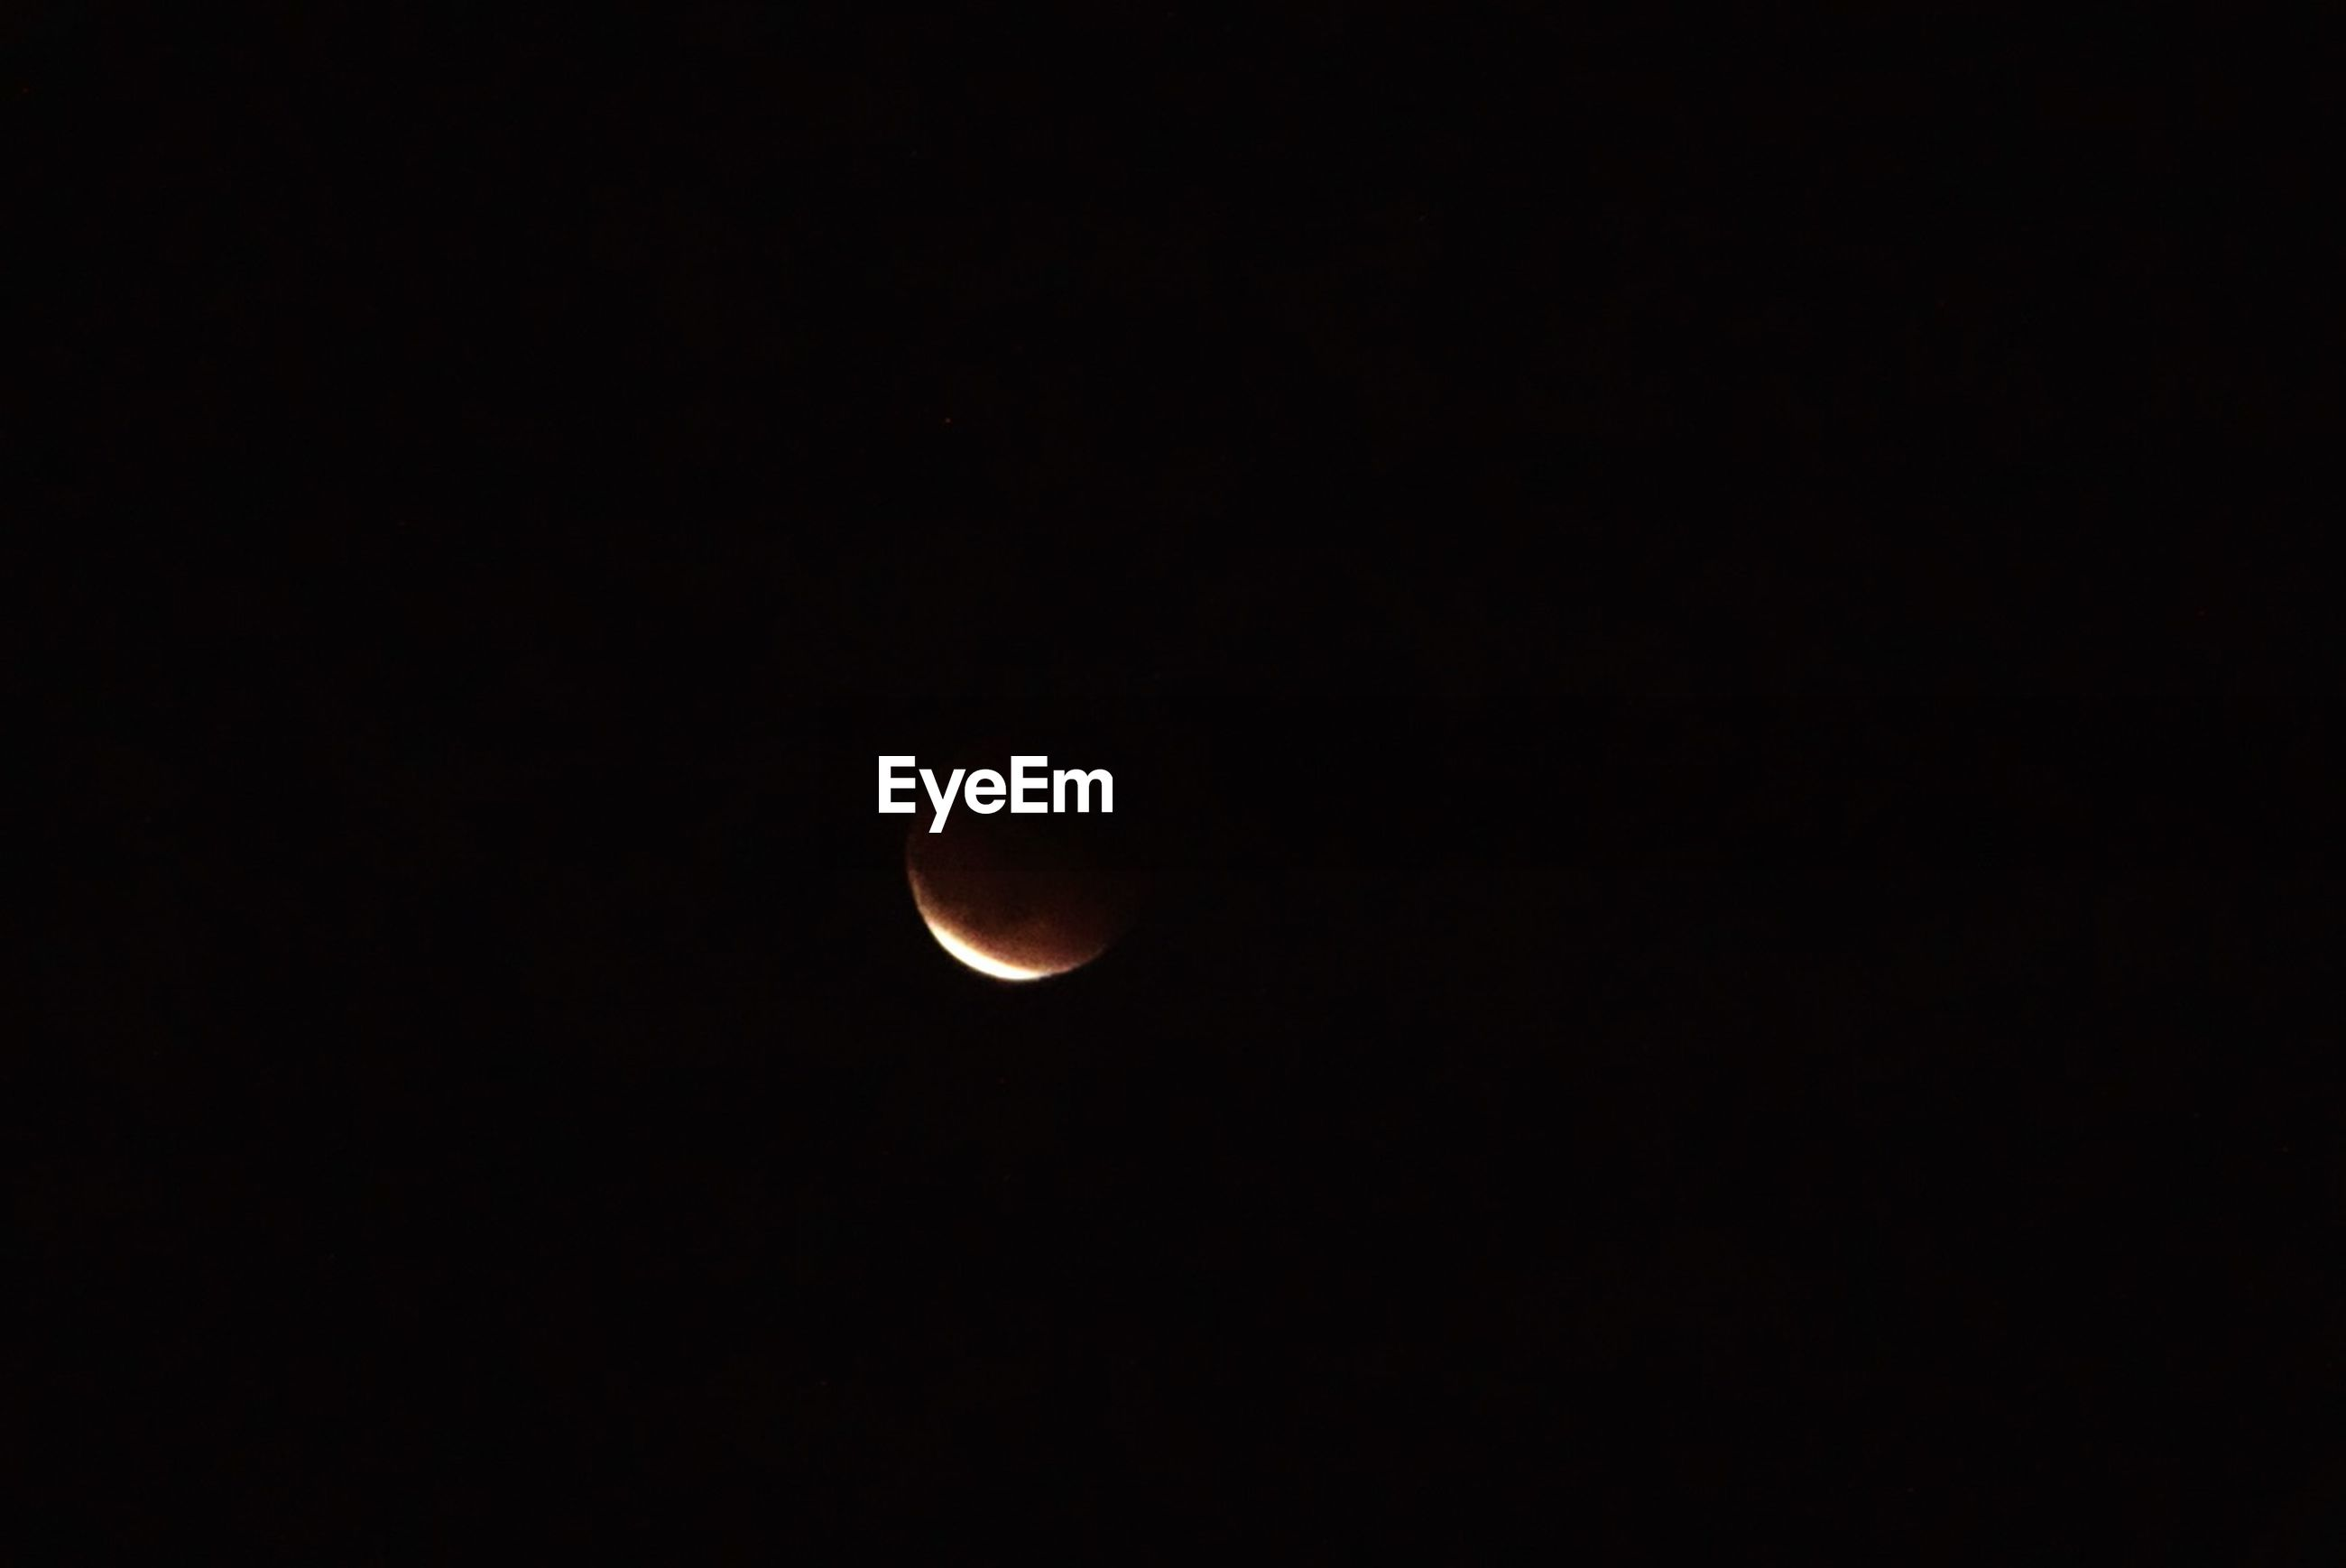 Low angle view of lunar eclipse against clear sky at night